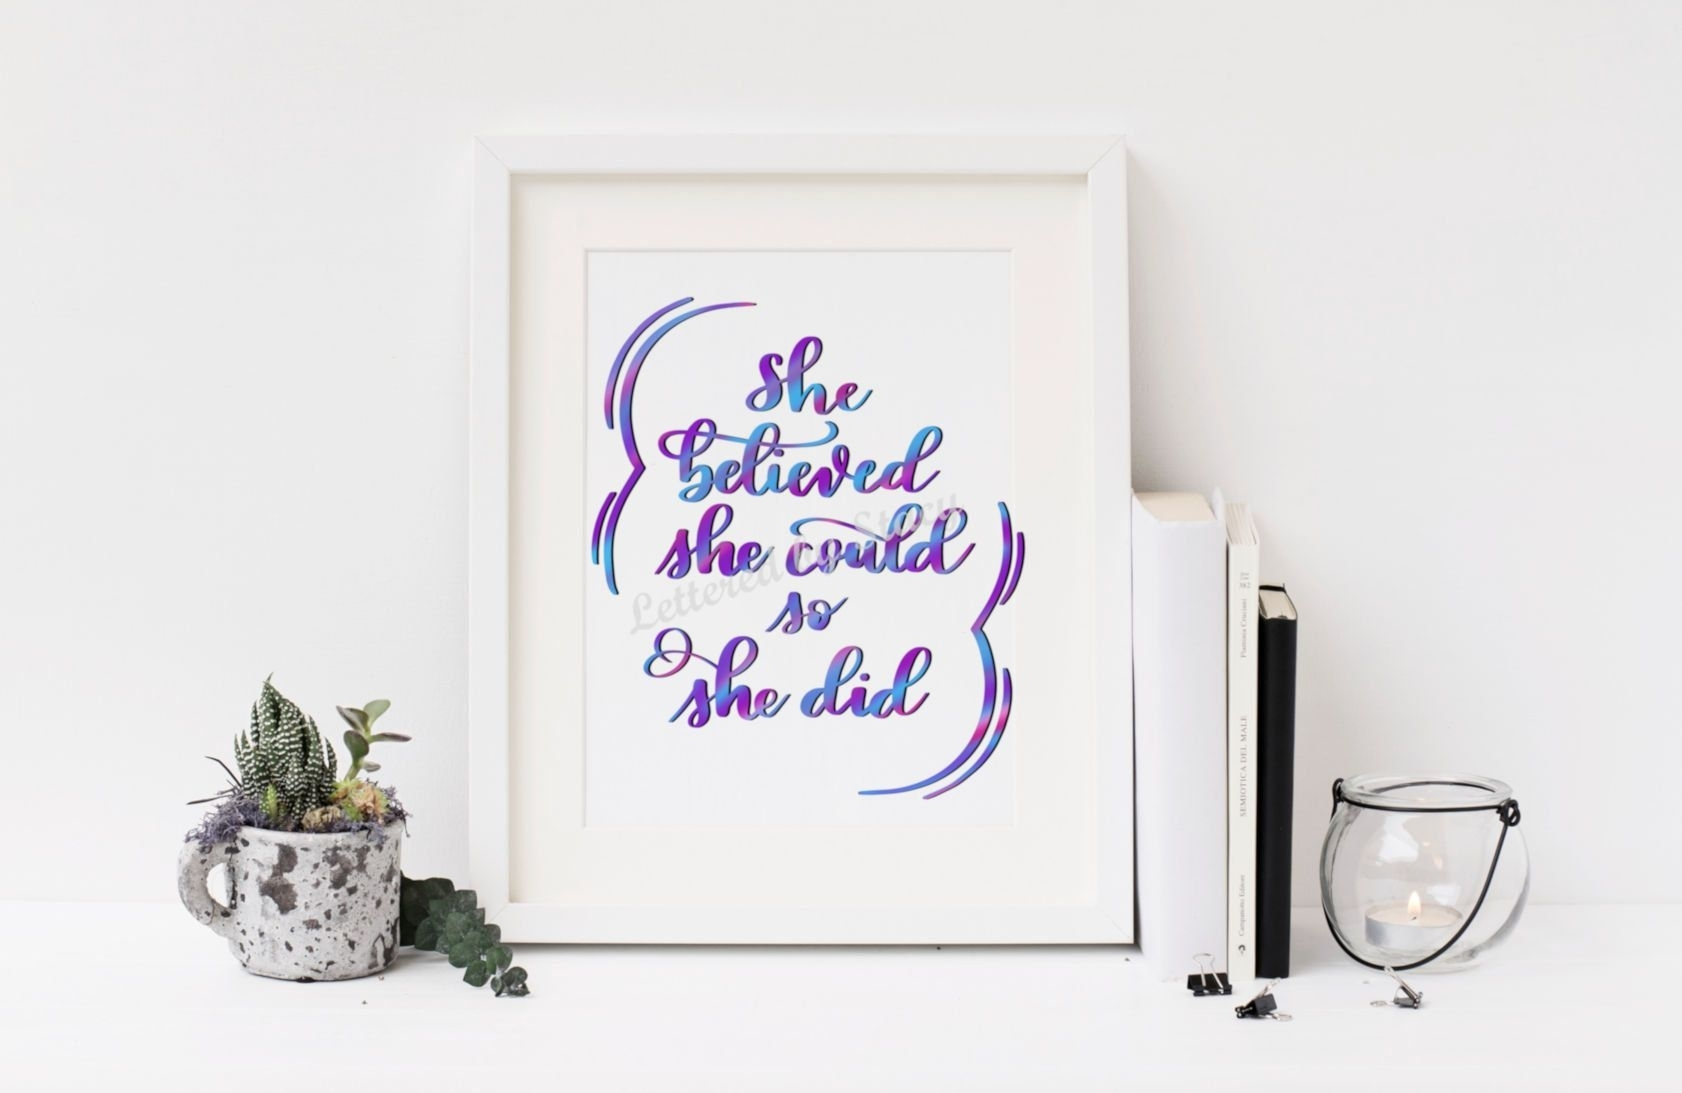 She Believed She Could So She Did, Digital Print, Wall Art With Best And Newest She Believed She Could So She Did Wall Art (View 19 of 20)